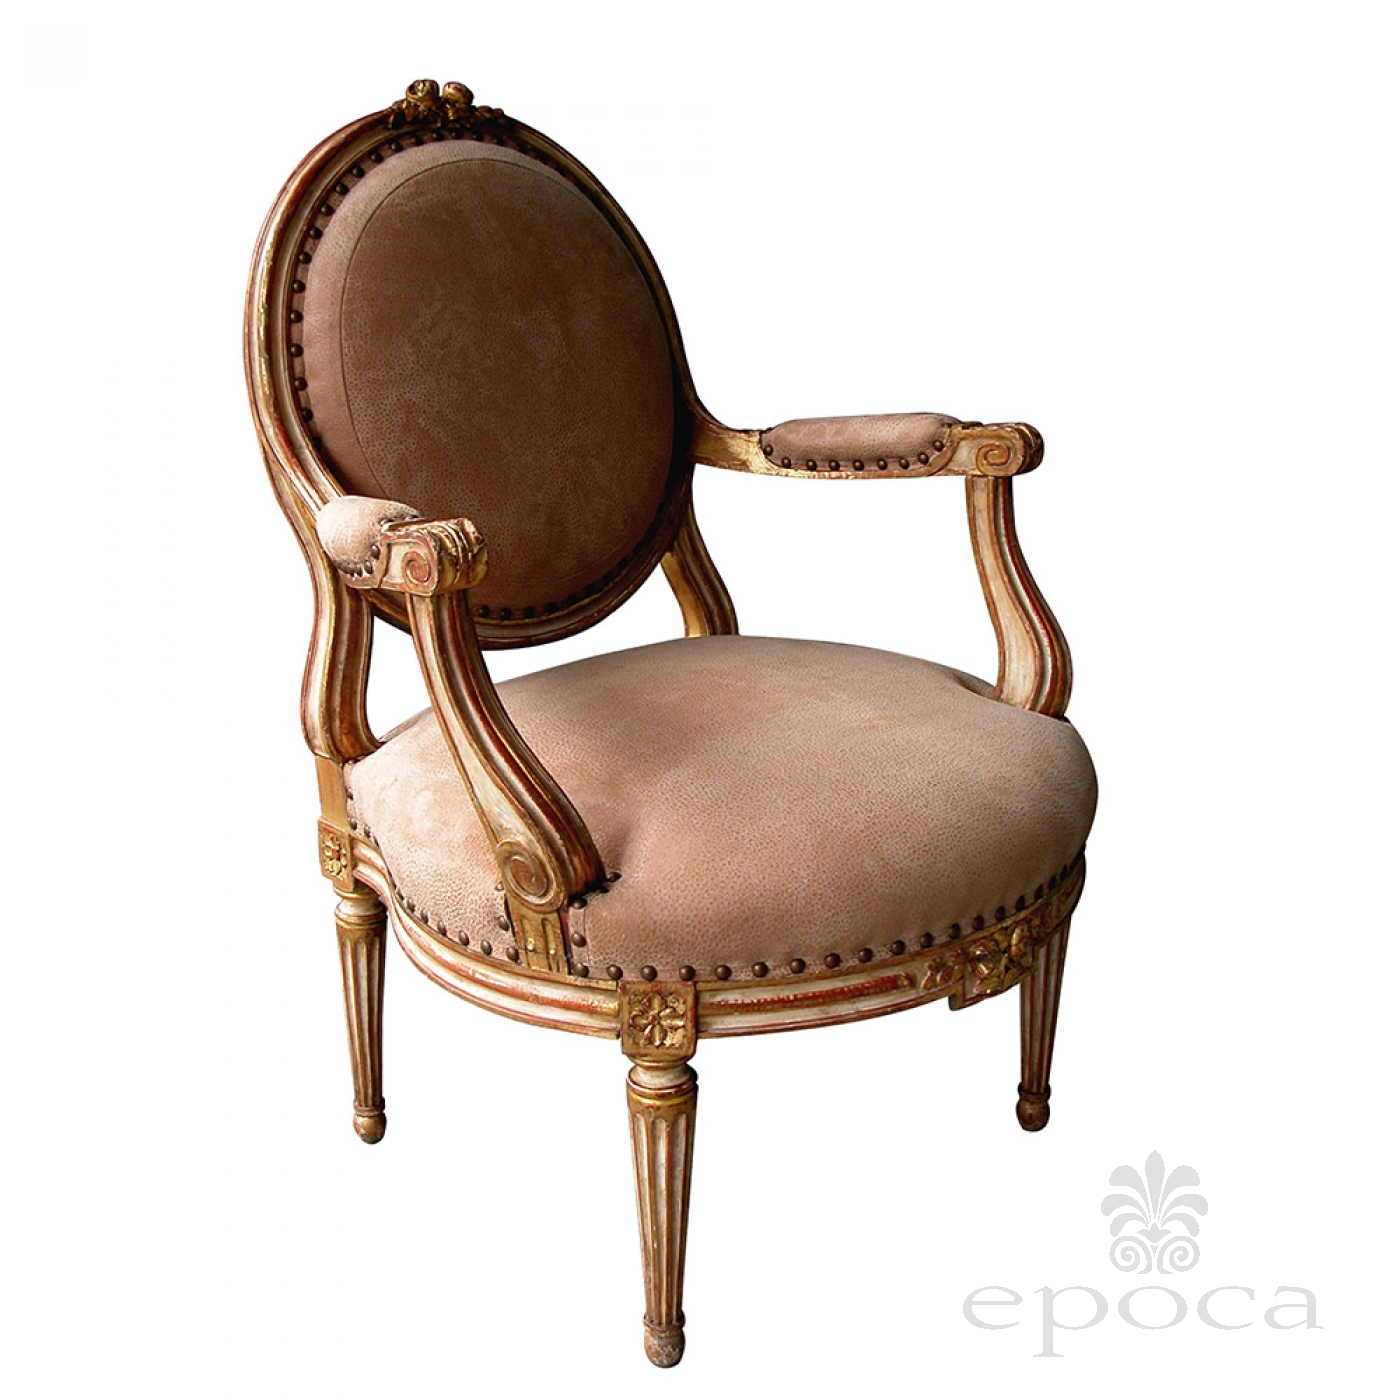 A Large Scaled And Elegant French Louis Xvi Style Ivory